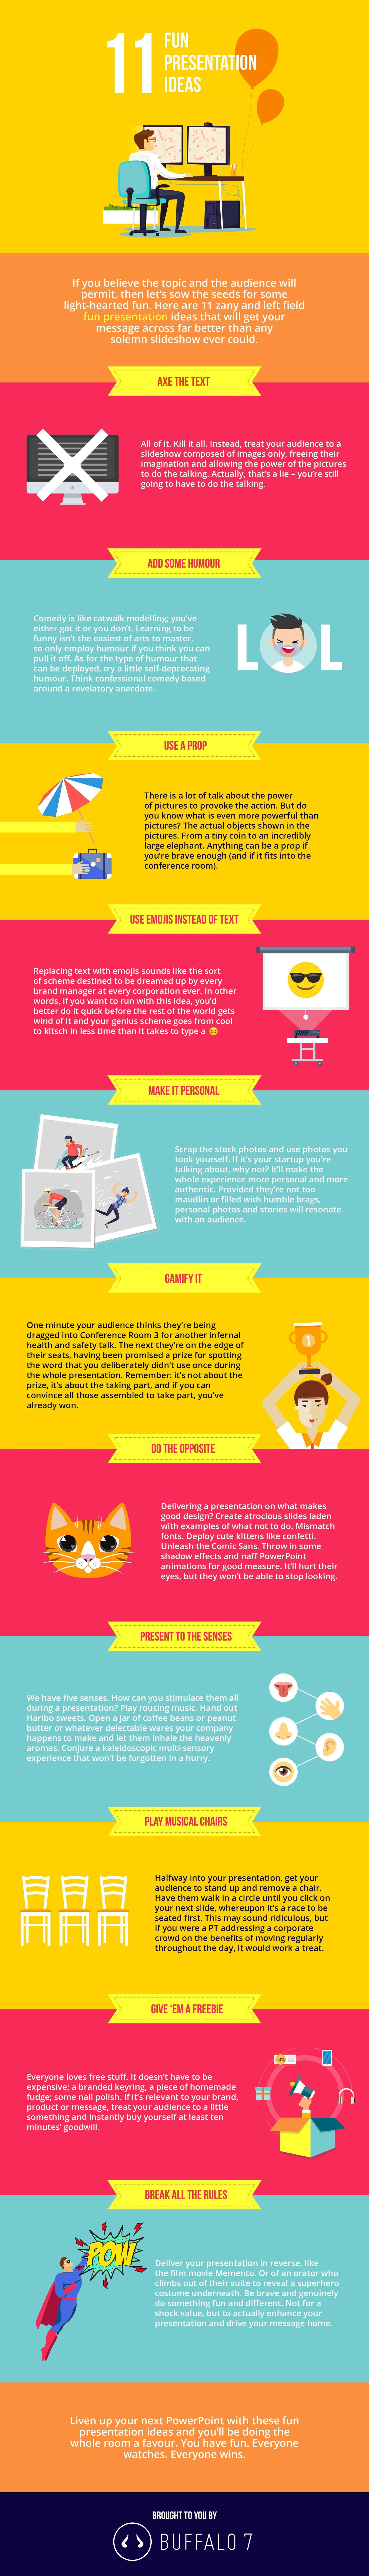 11 Fun Presentation Ideas That Will Help You Engage With Your Audience Good Presentation Presentation Audience Engagement